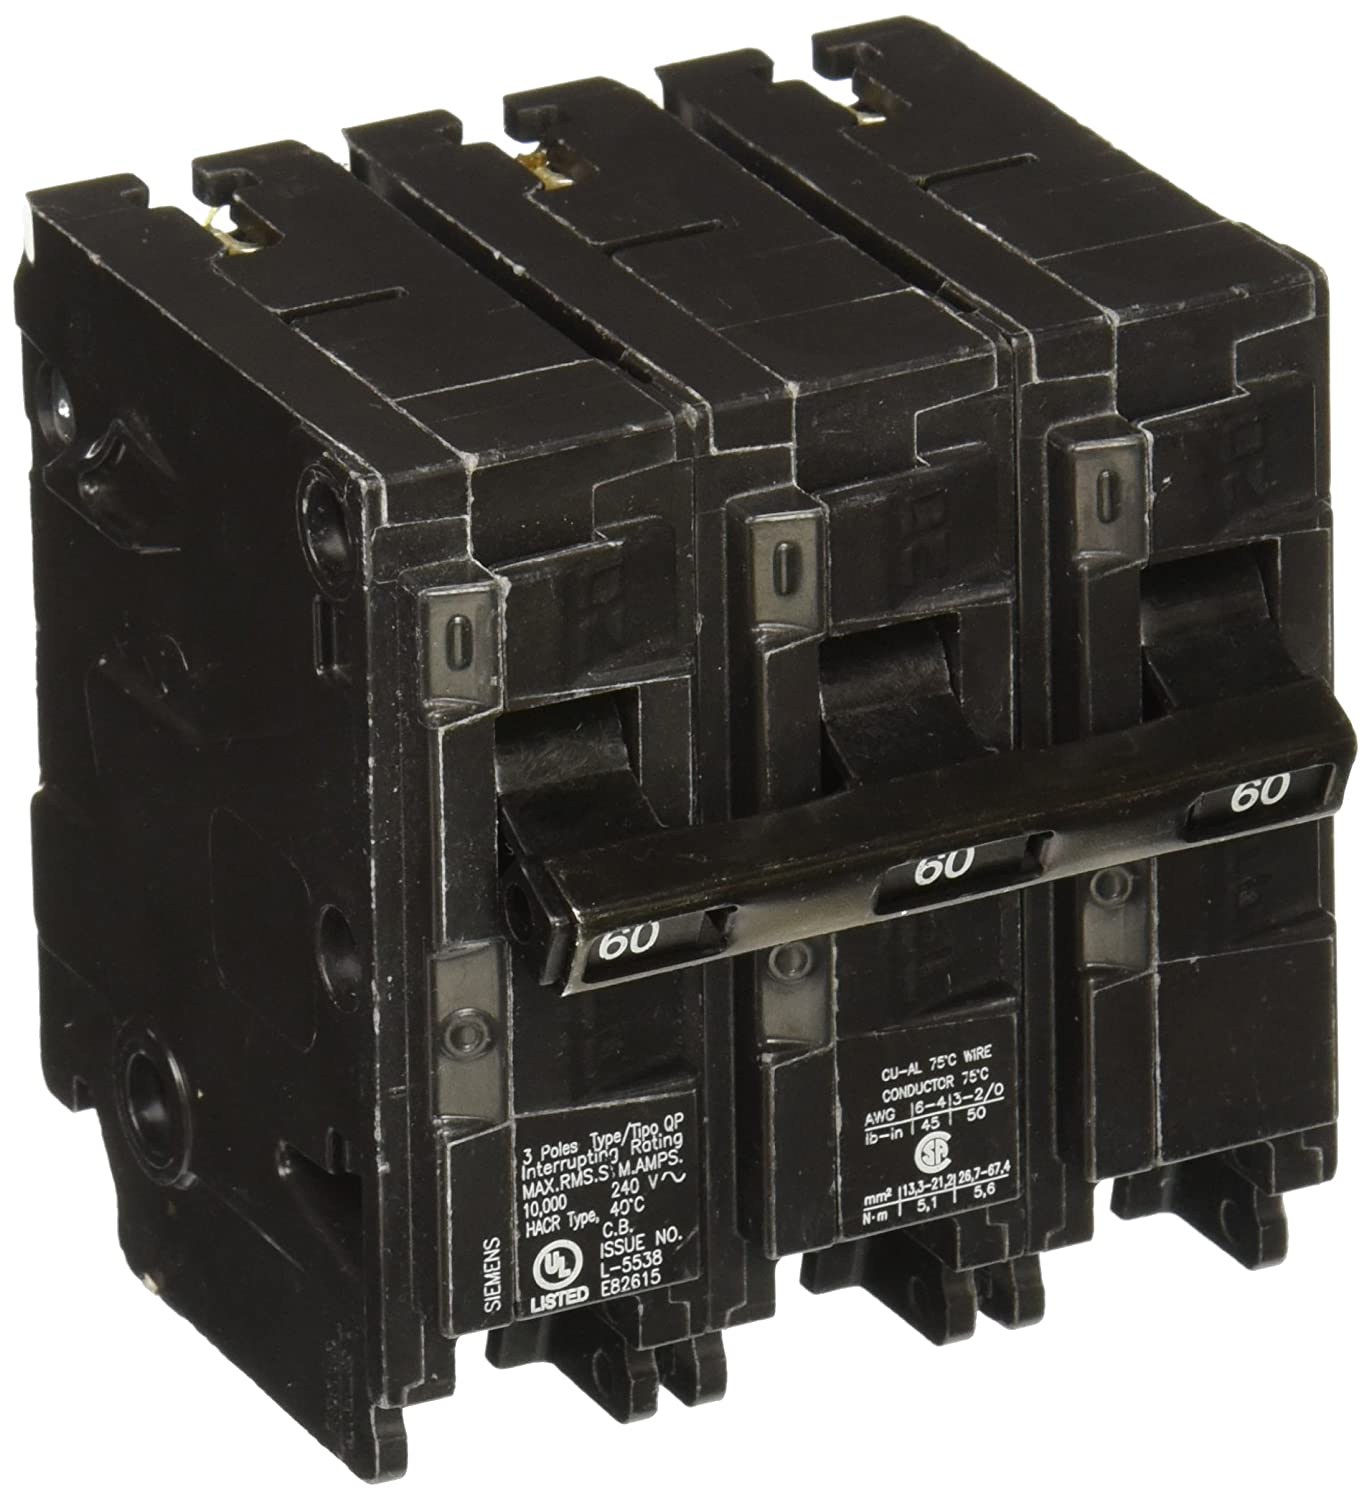 Q360 60 Amp Three Pole Type Qp Circuit Breaker Electrical Distribution Panels Fires